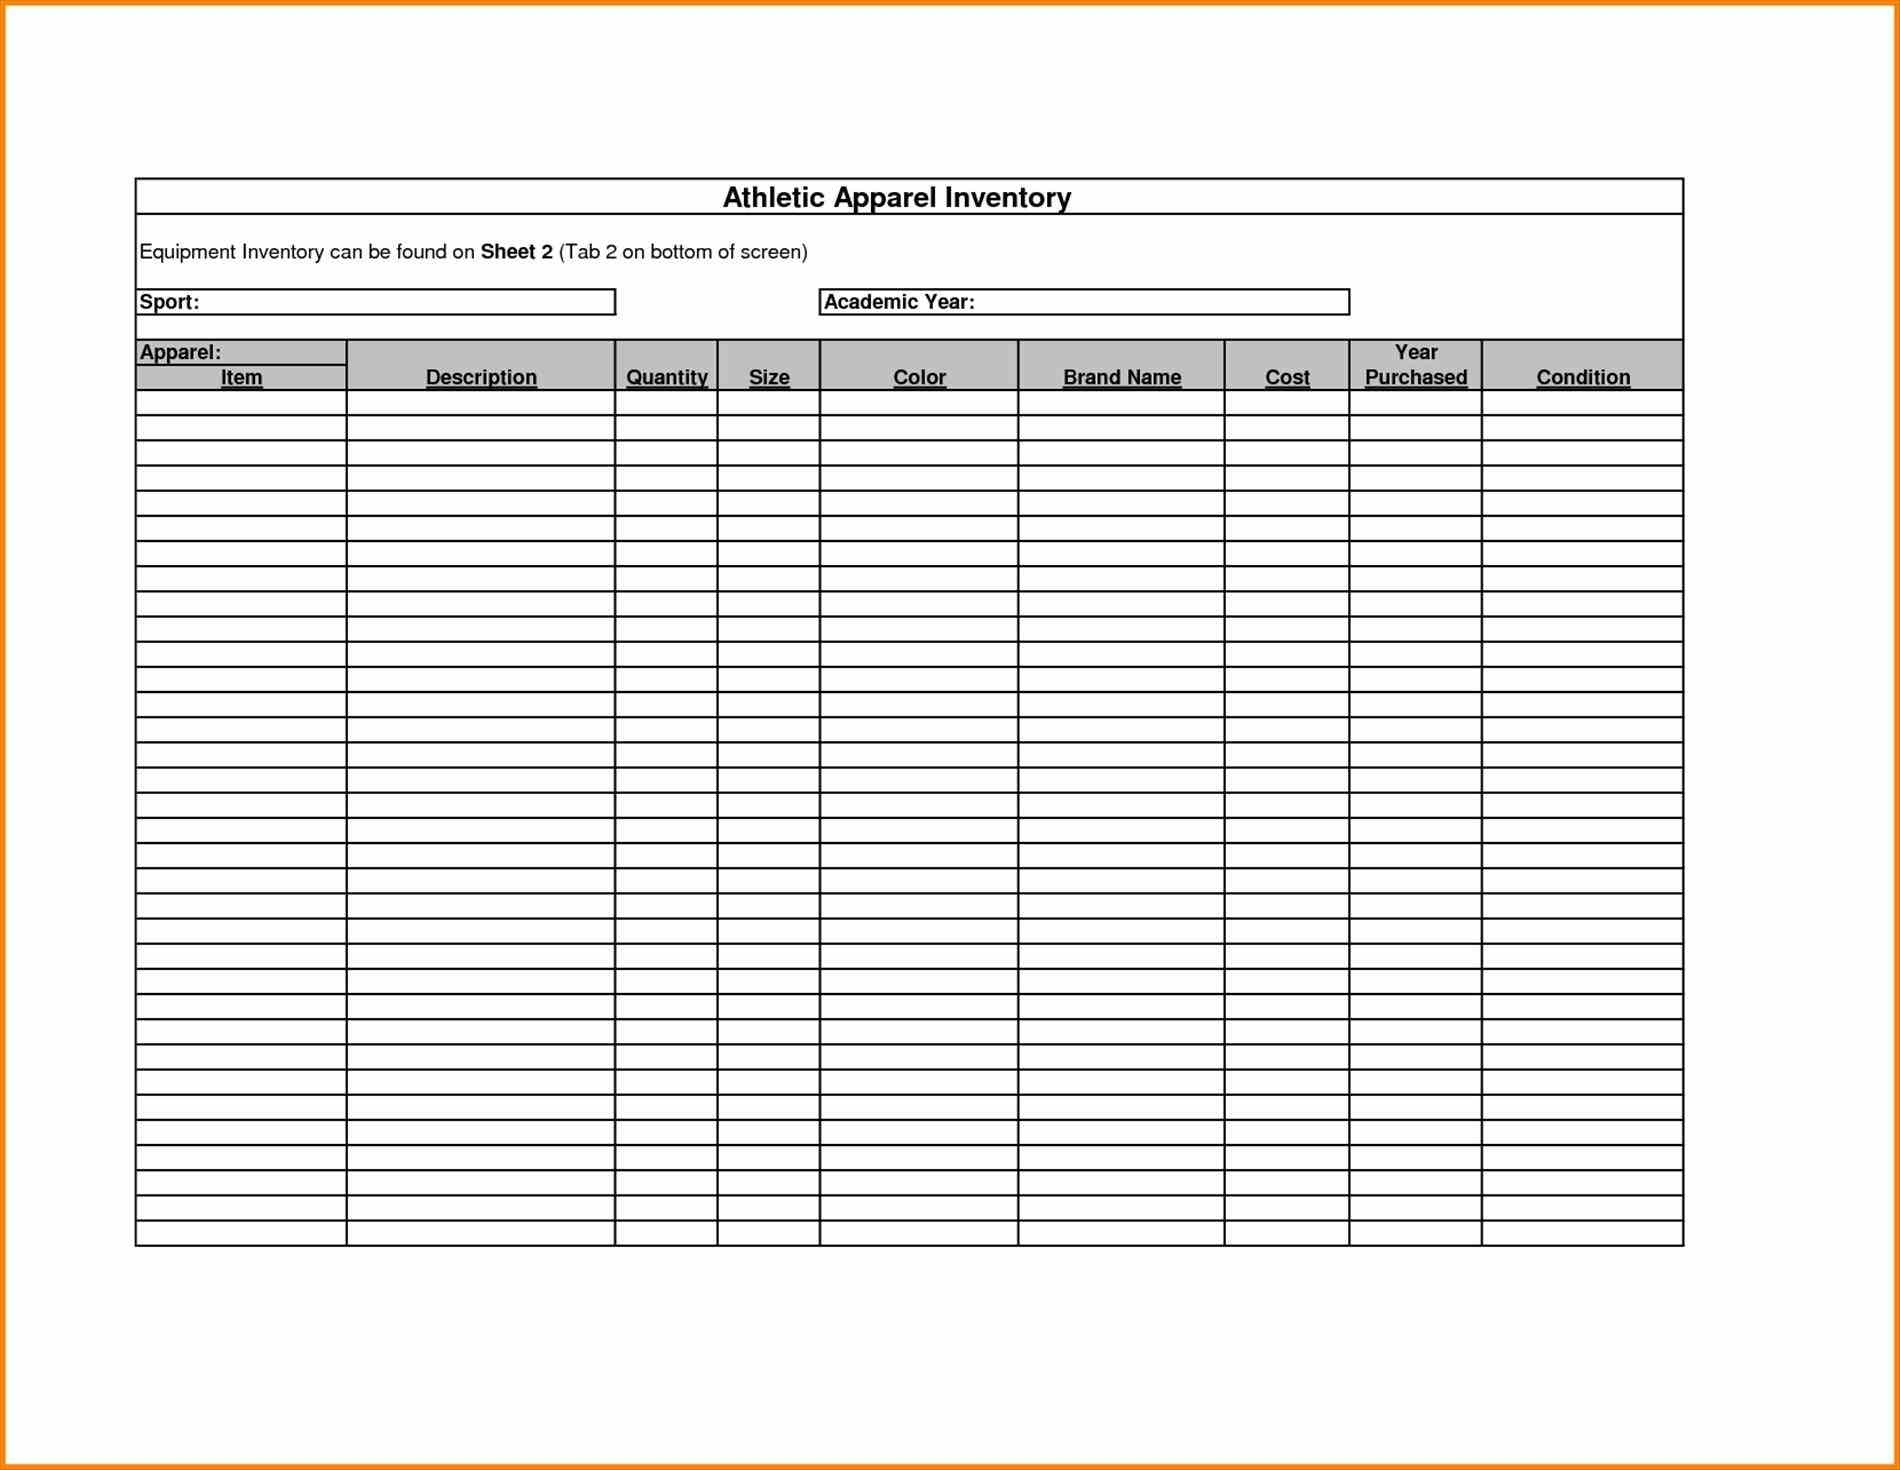 Inventory Spreadsheet Template Excel Product Tracking Pertaining To Inventory Spreadsheet Template Excel Product Tracking Lovely Food